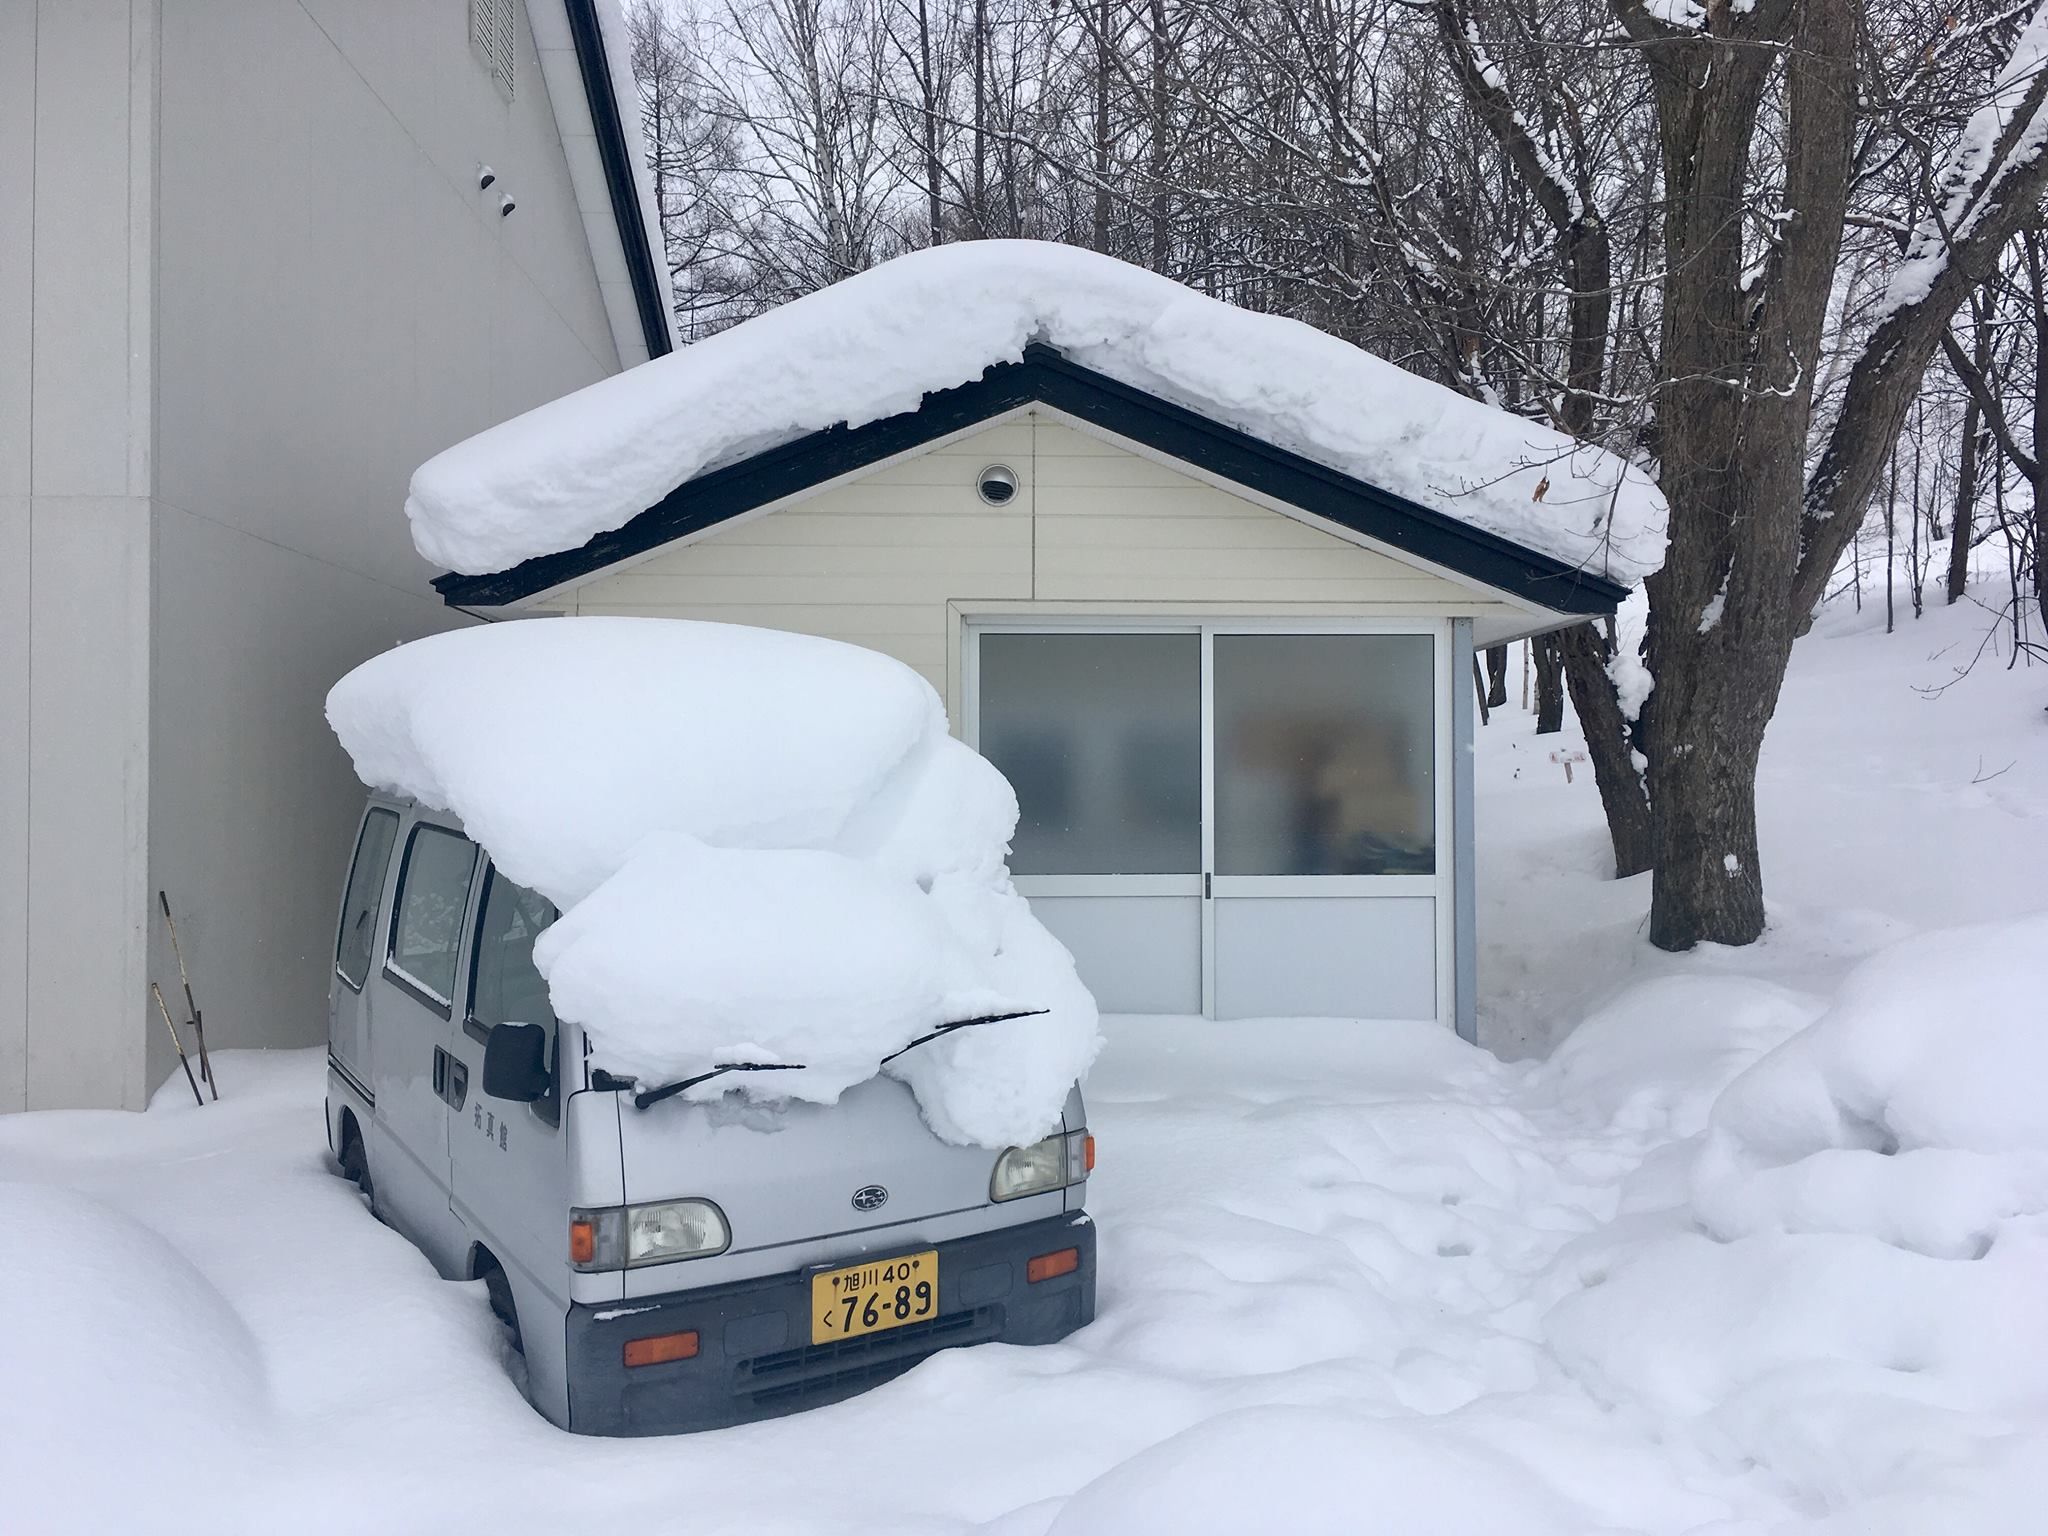 More things buried in snow in Hokkaido